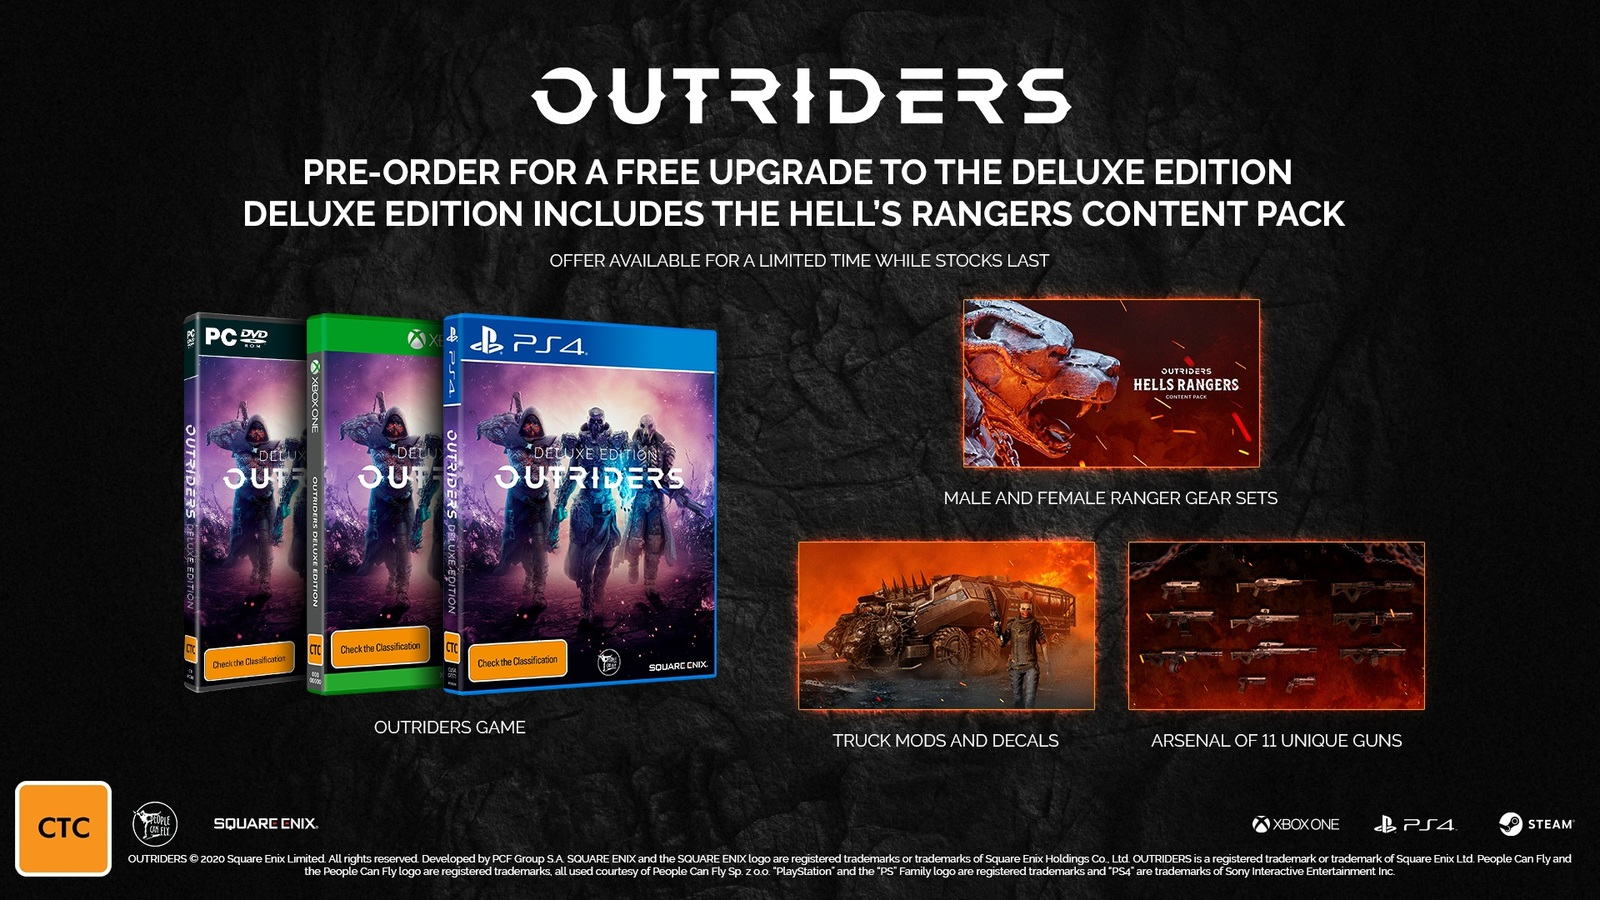 Outriders for PC image